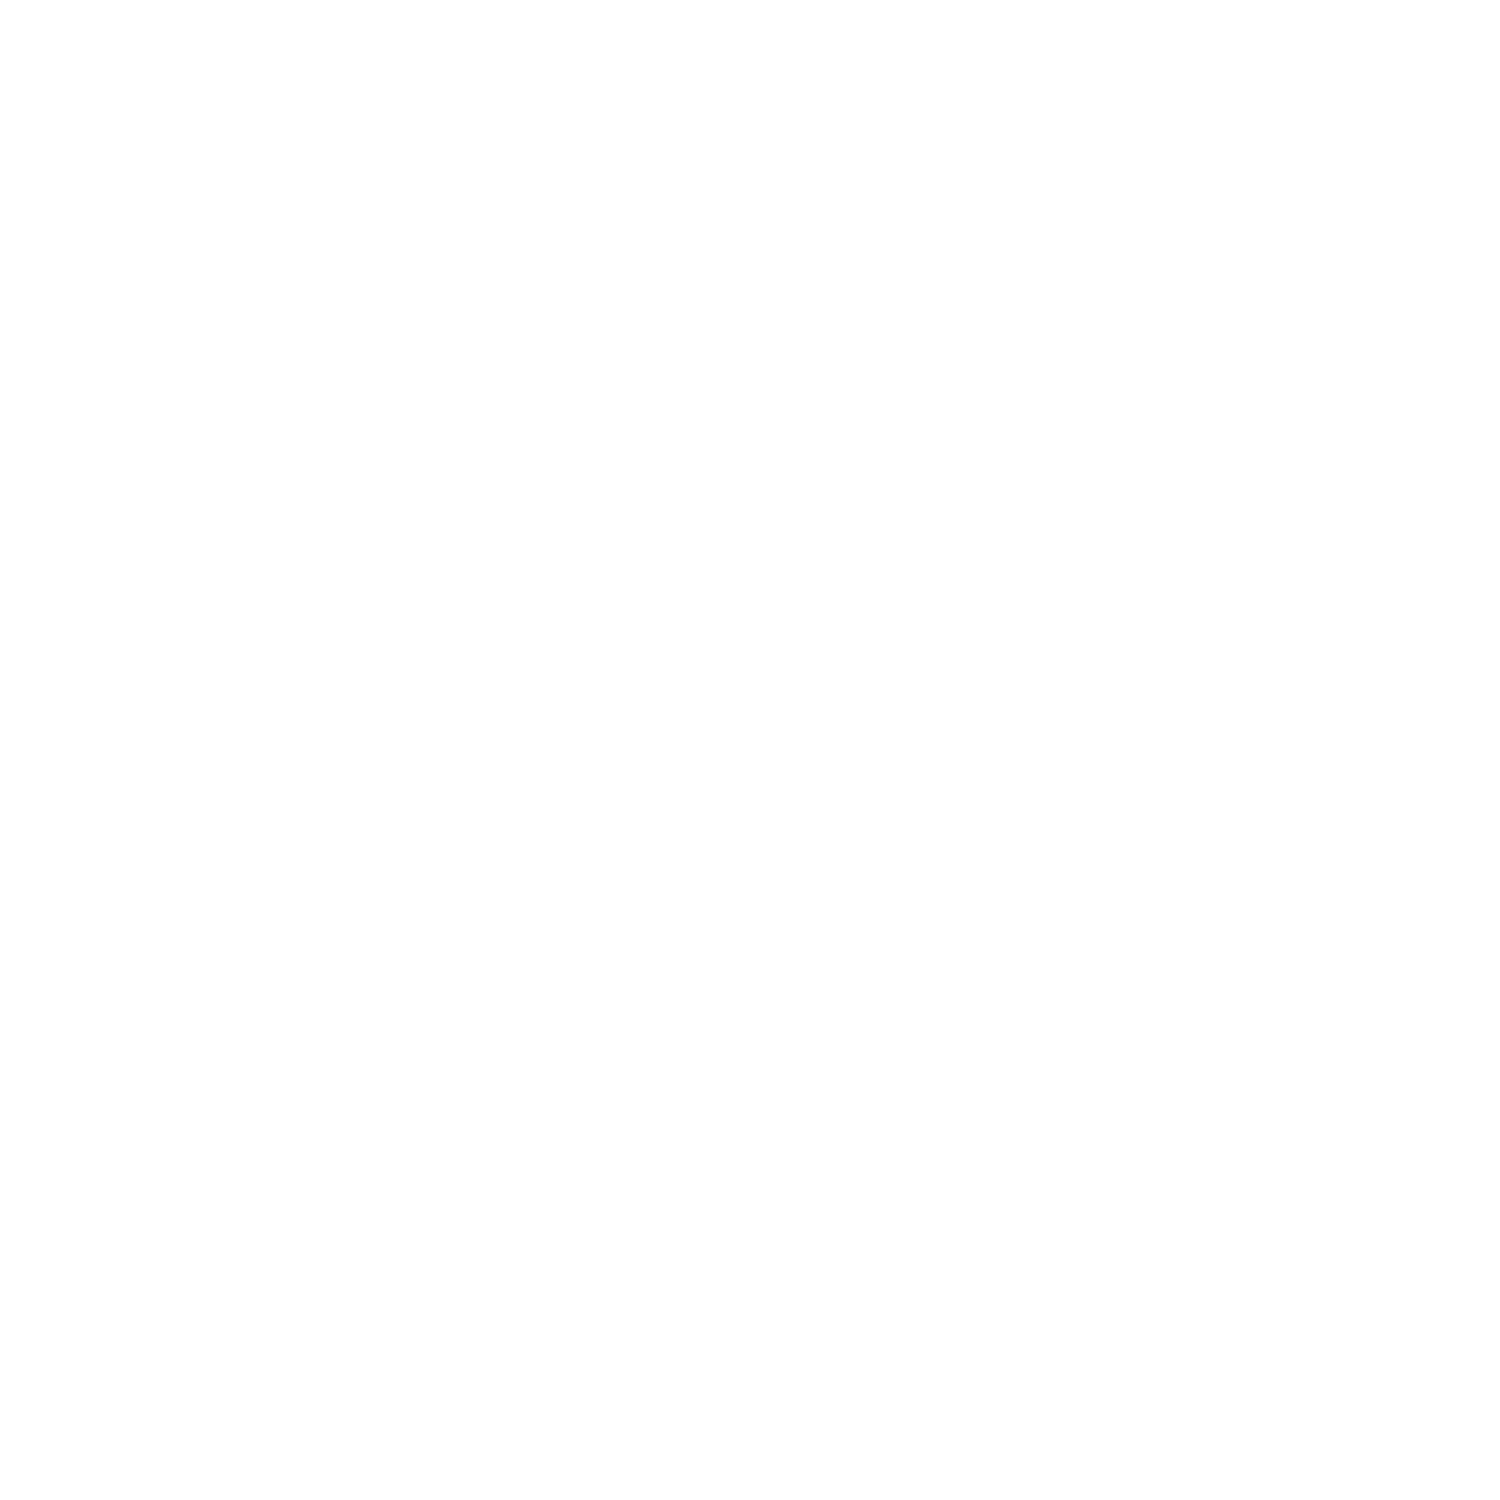 Keyboard Galleria Music Center